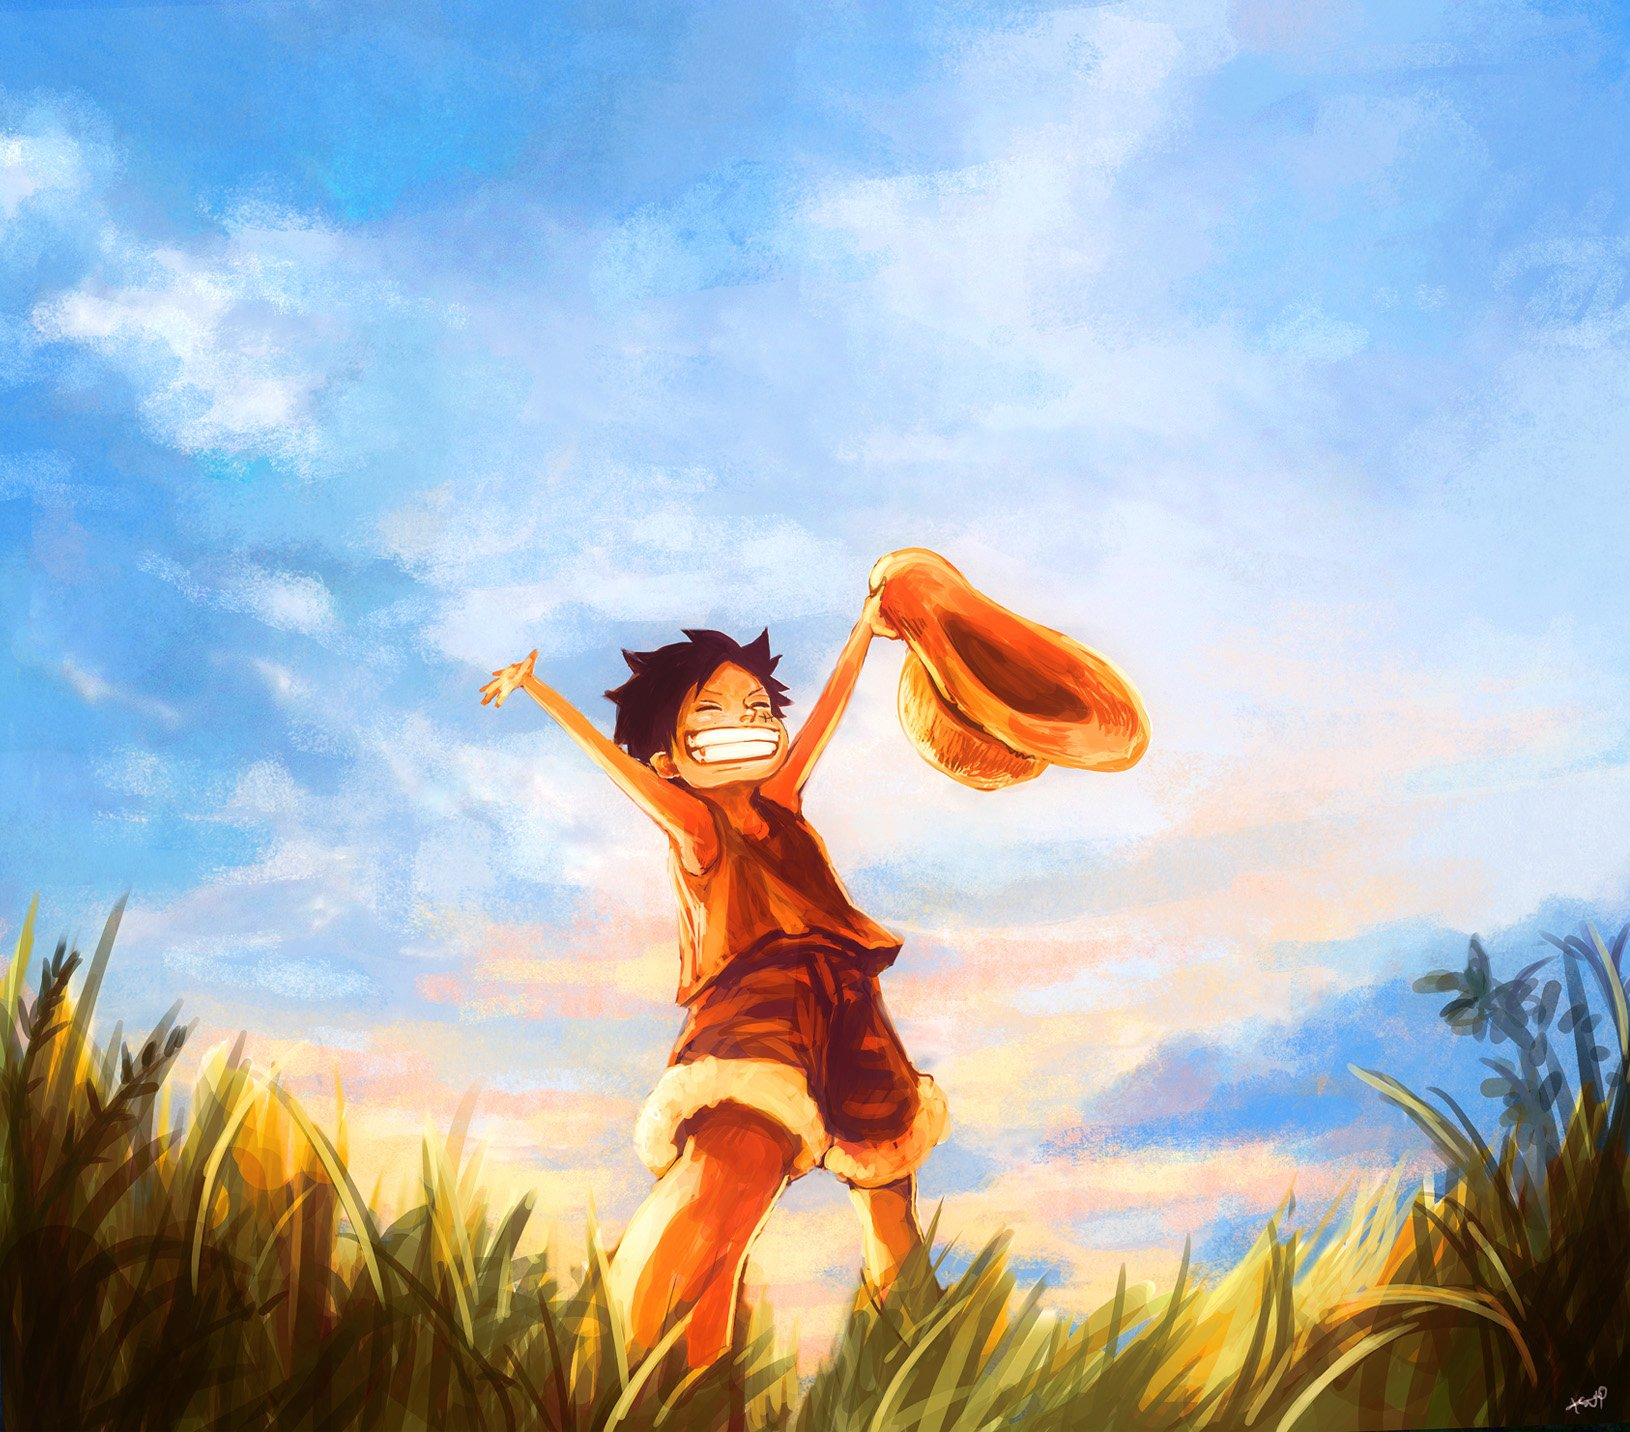 Monkey D Luffy Wallpaper And Background Image 1630x1432 Id 650007 Wallpaper Abyss